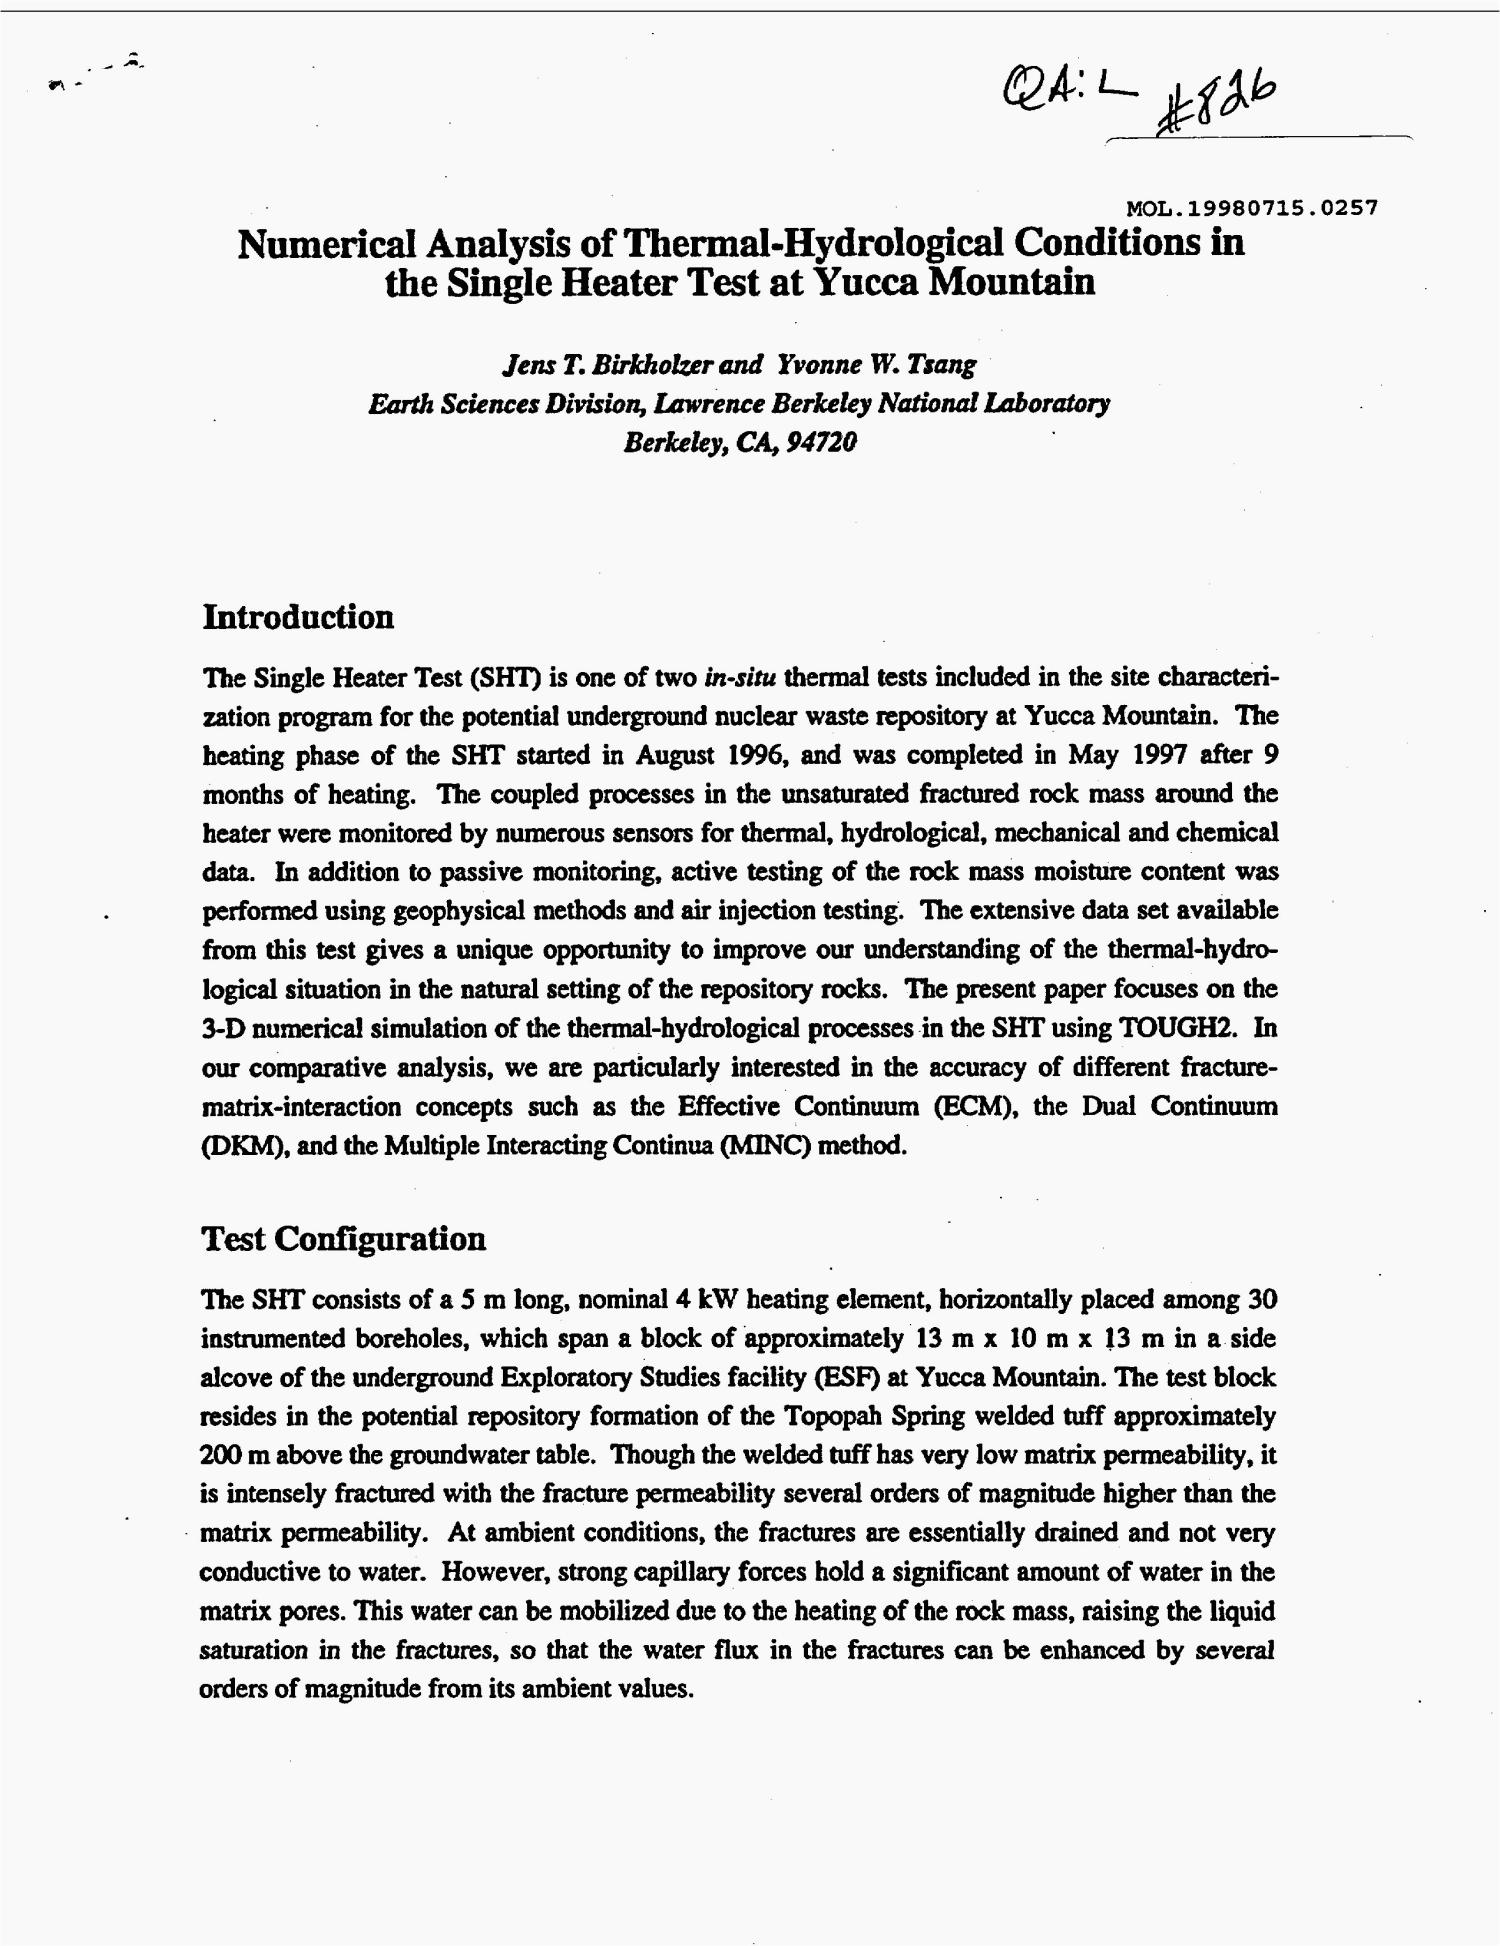 Numerical analysis of thermal-hydrological conditions in thesingle heater test at Yucca Mountain                                                                                                      [Sequence #]: 1 of 6